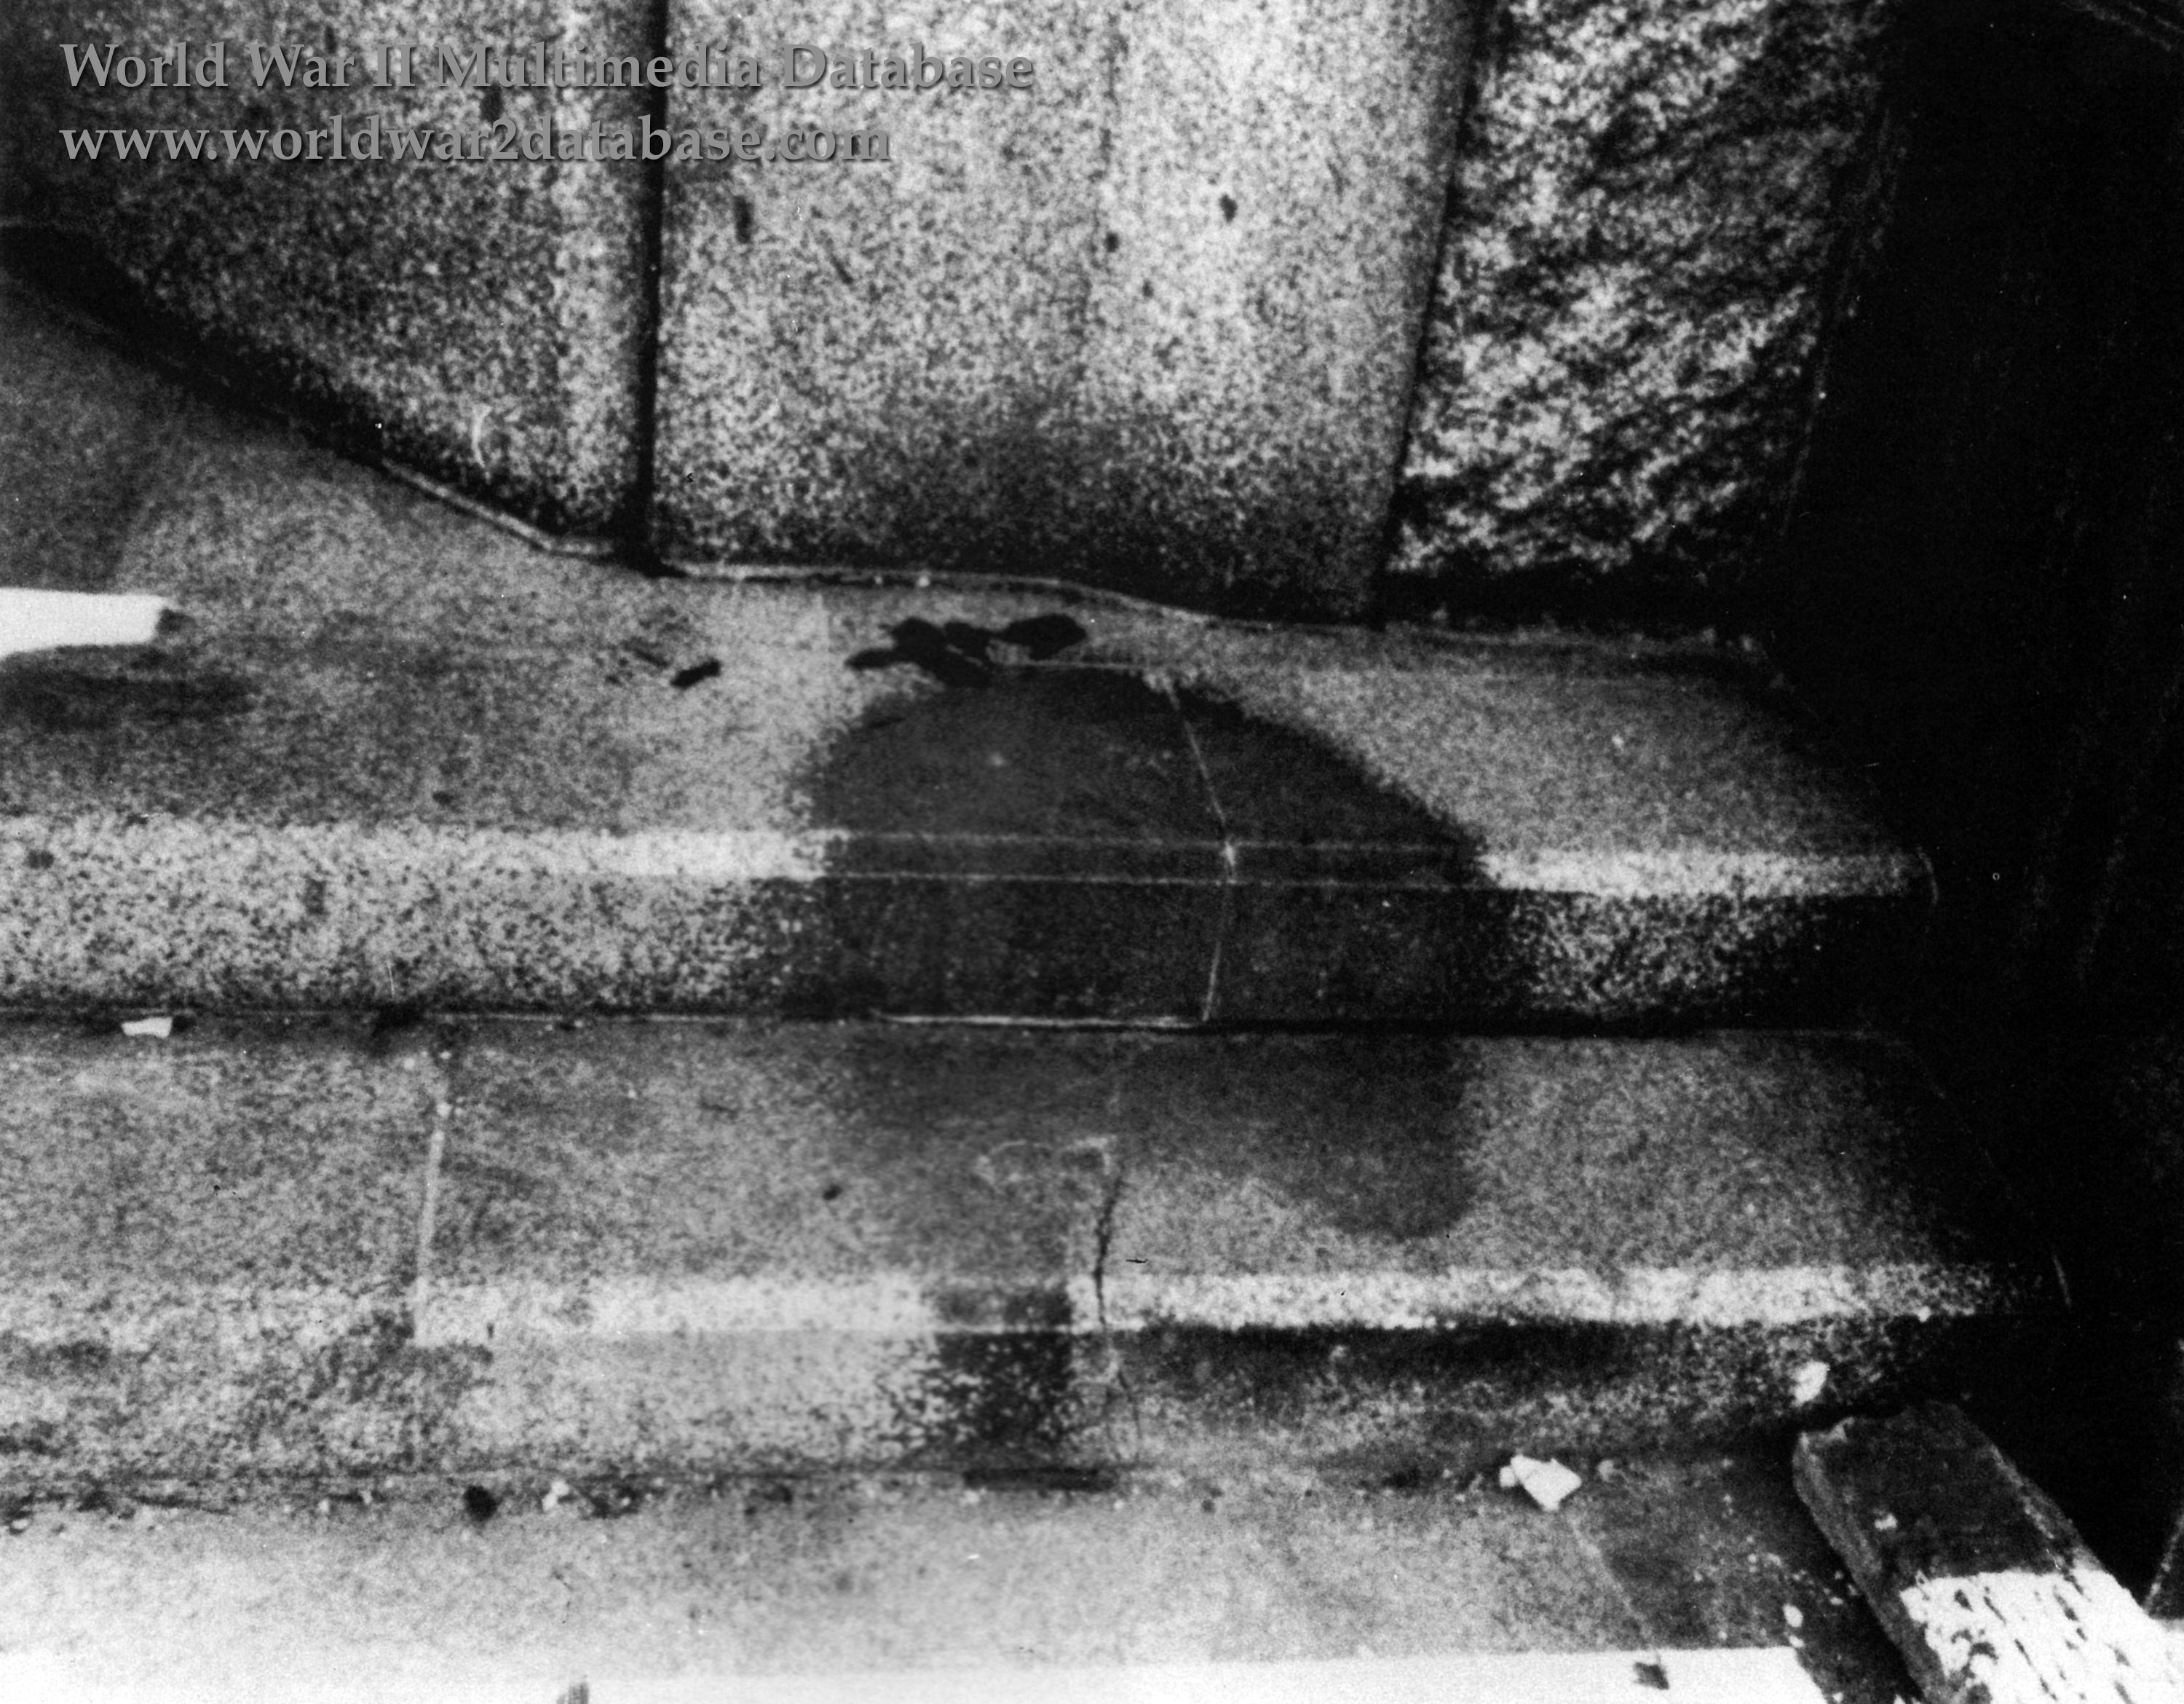 Human Shadow Etched In Stone   The World War II Multimedia ...